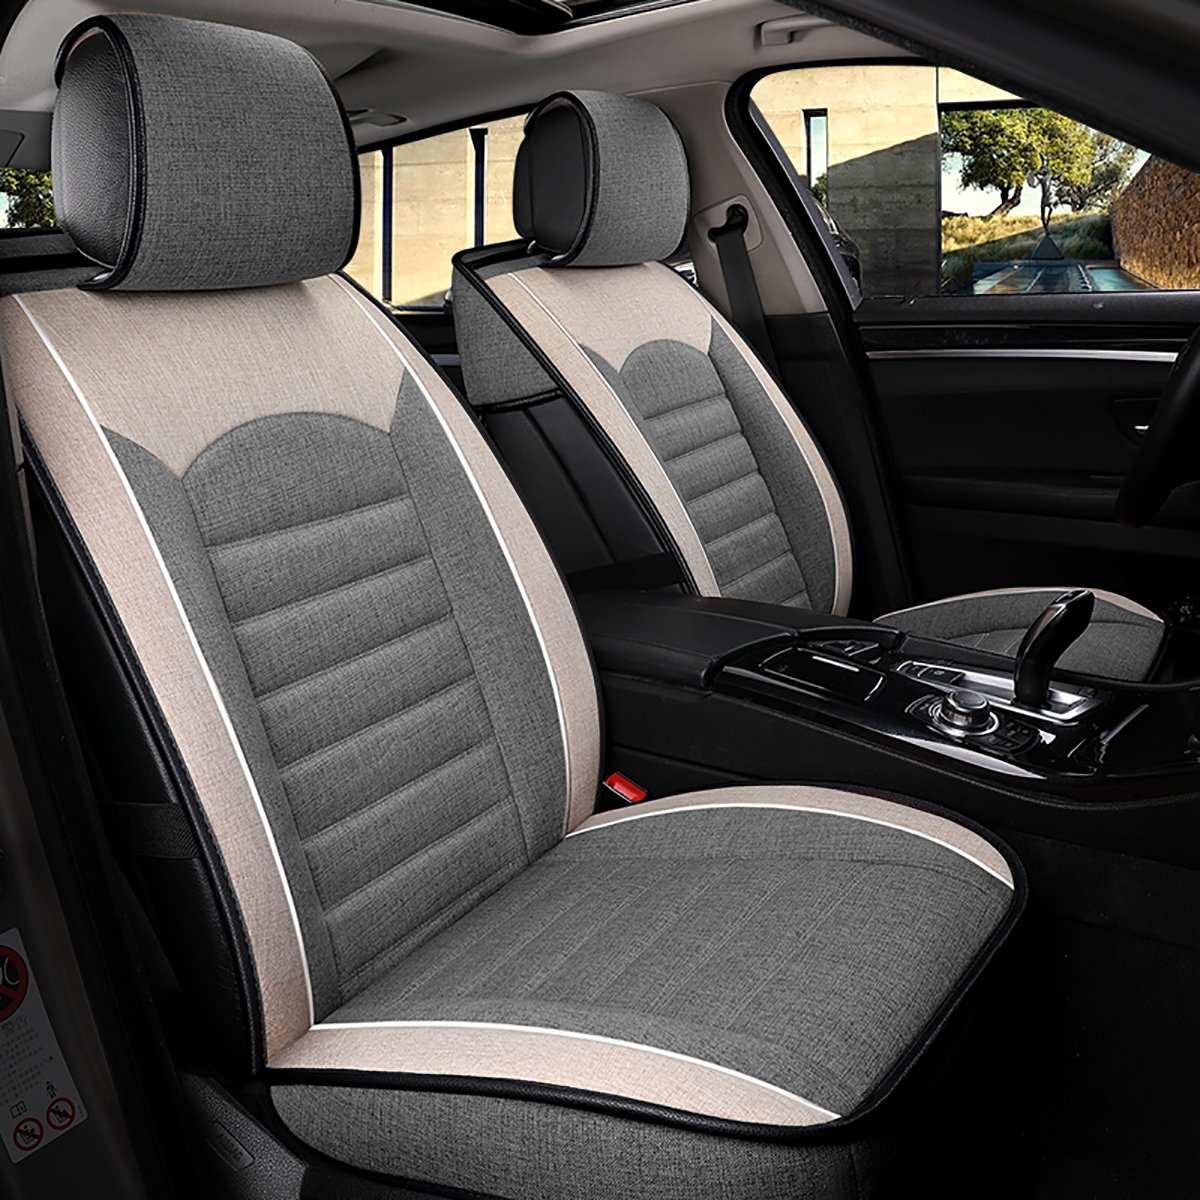 INCH EMPIRE Sport Style Linen//Flax Super Breathable Car Seat Covers Full Set Adjustable Seat Covers for Audi Jeep Ford Mercedes-Benz and 98/% Other Types of 5 Seats Cars